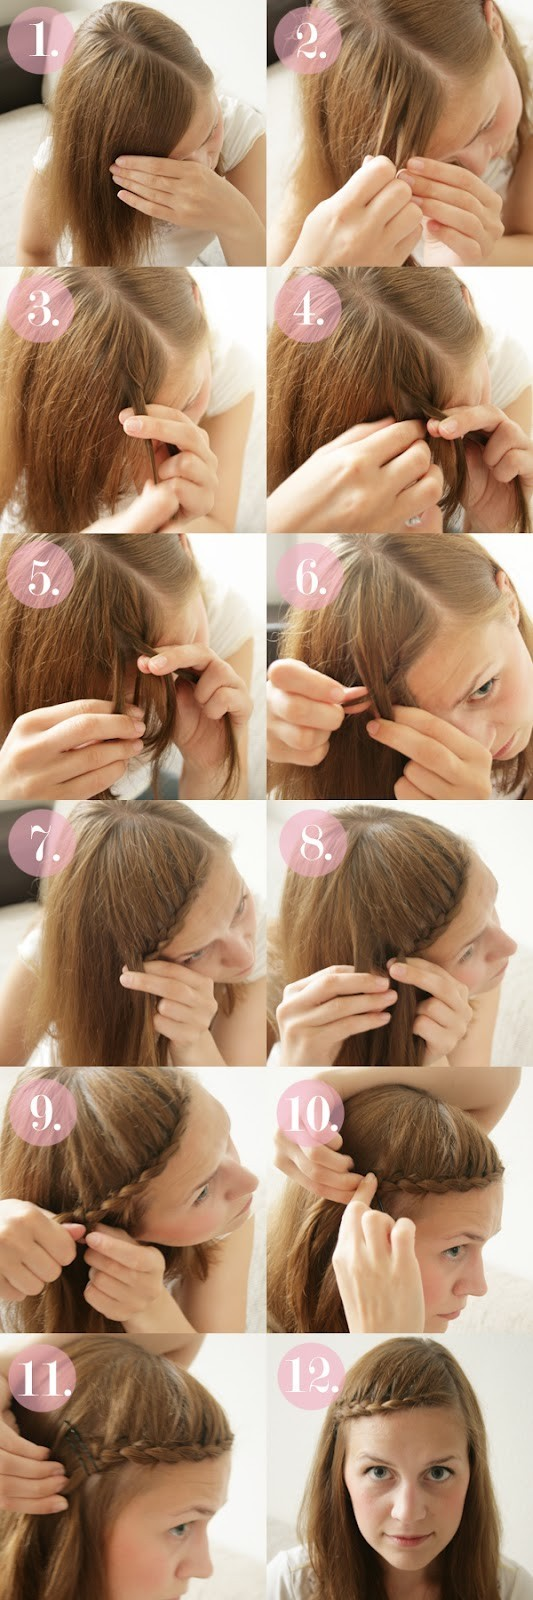 Pleasant 15 Braided Bangs Tutorials Cute Easy Hairstyles Pretty Designs Hairstyle Inspiration Daily Dogsangcom